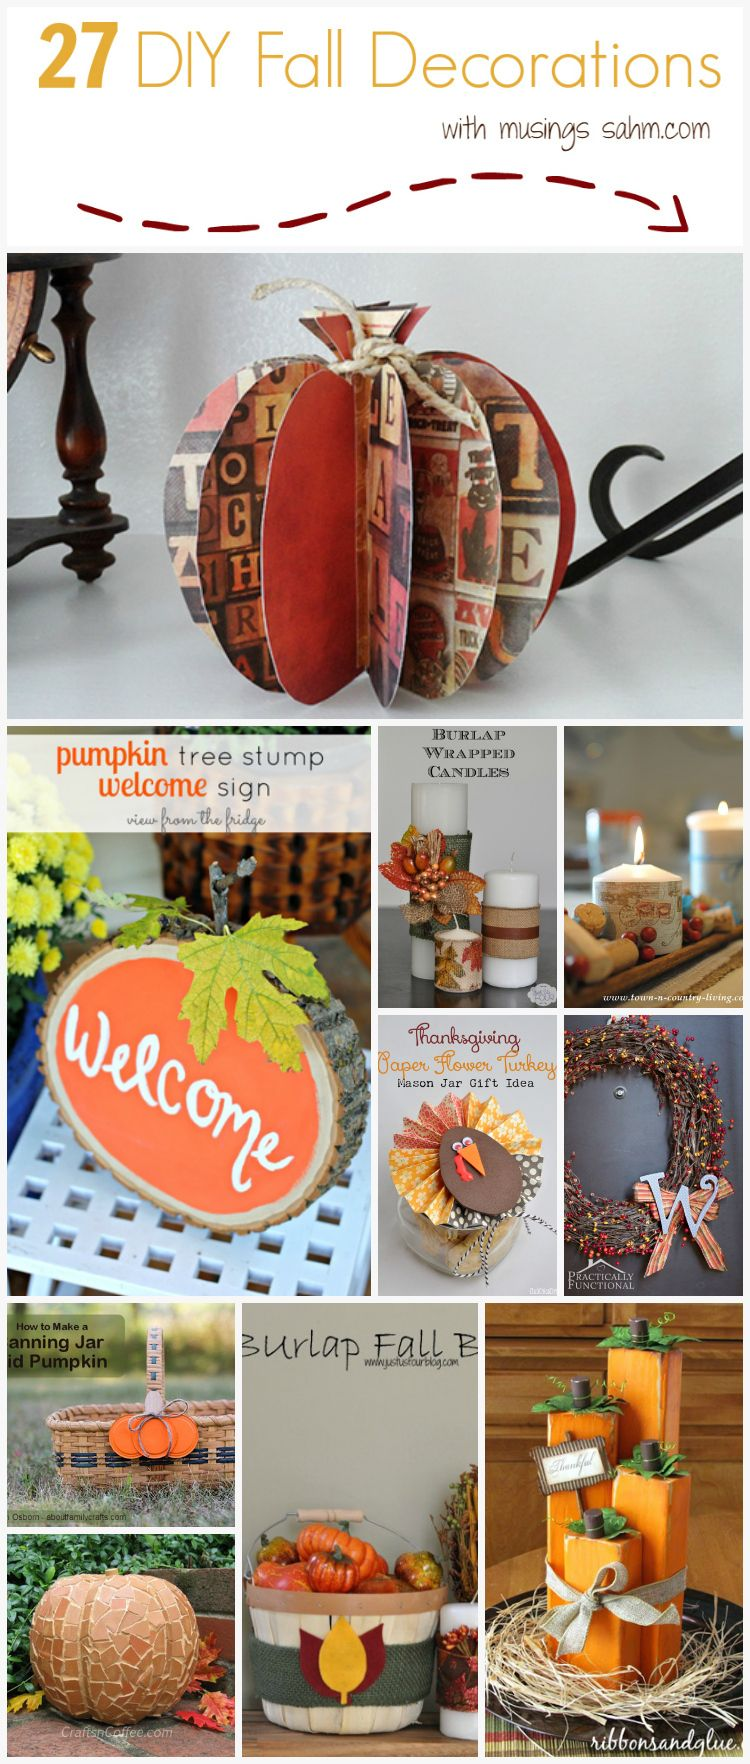 Diy air freshener with fall essential oils with images